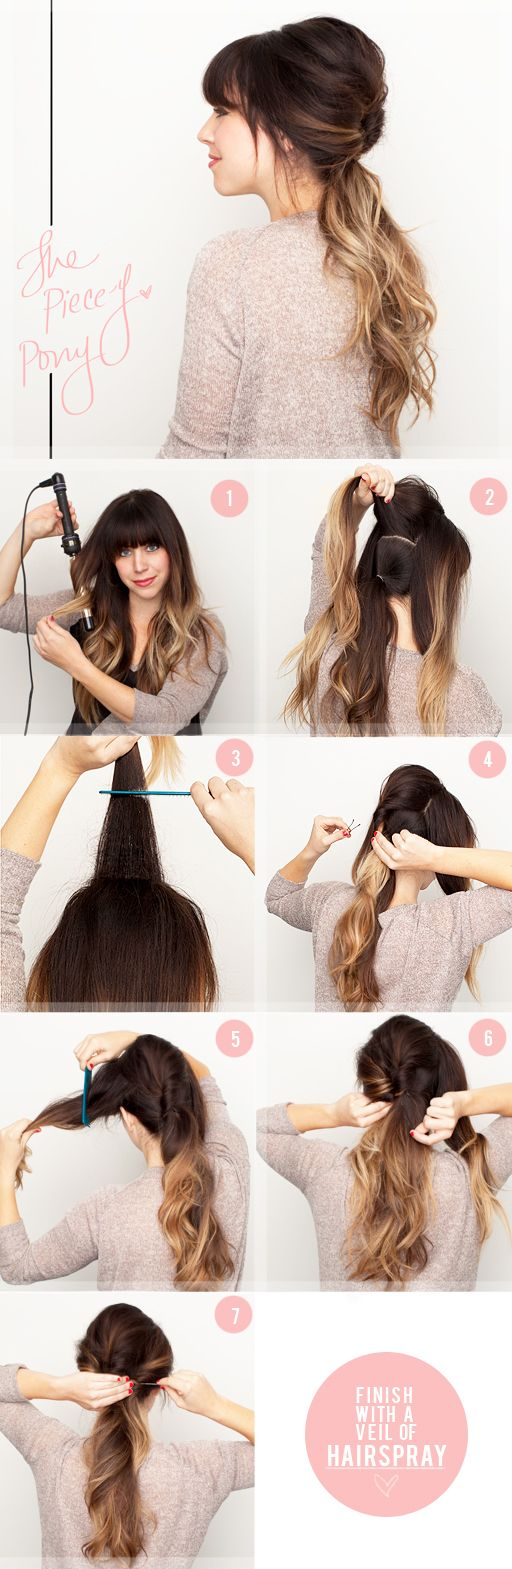 Trying this hair style tomorrow...: Best Hairstyles, Hair Colors, Beautiful Department, Ombre Hair, Long Hair, Cute Ponytail, Hair Style, Ponytail Hairstyles, Ponies Tail